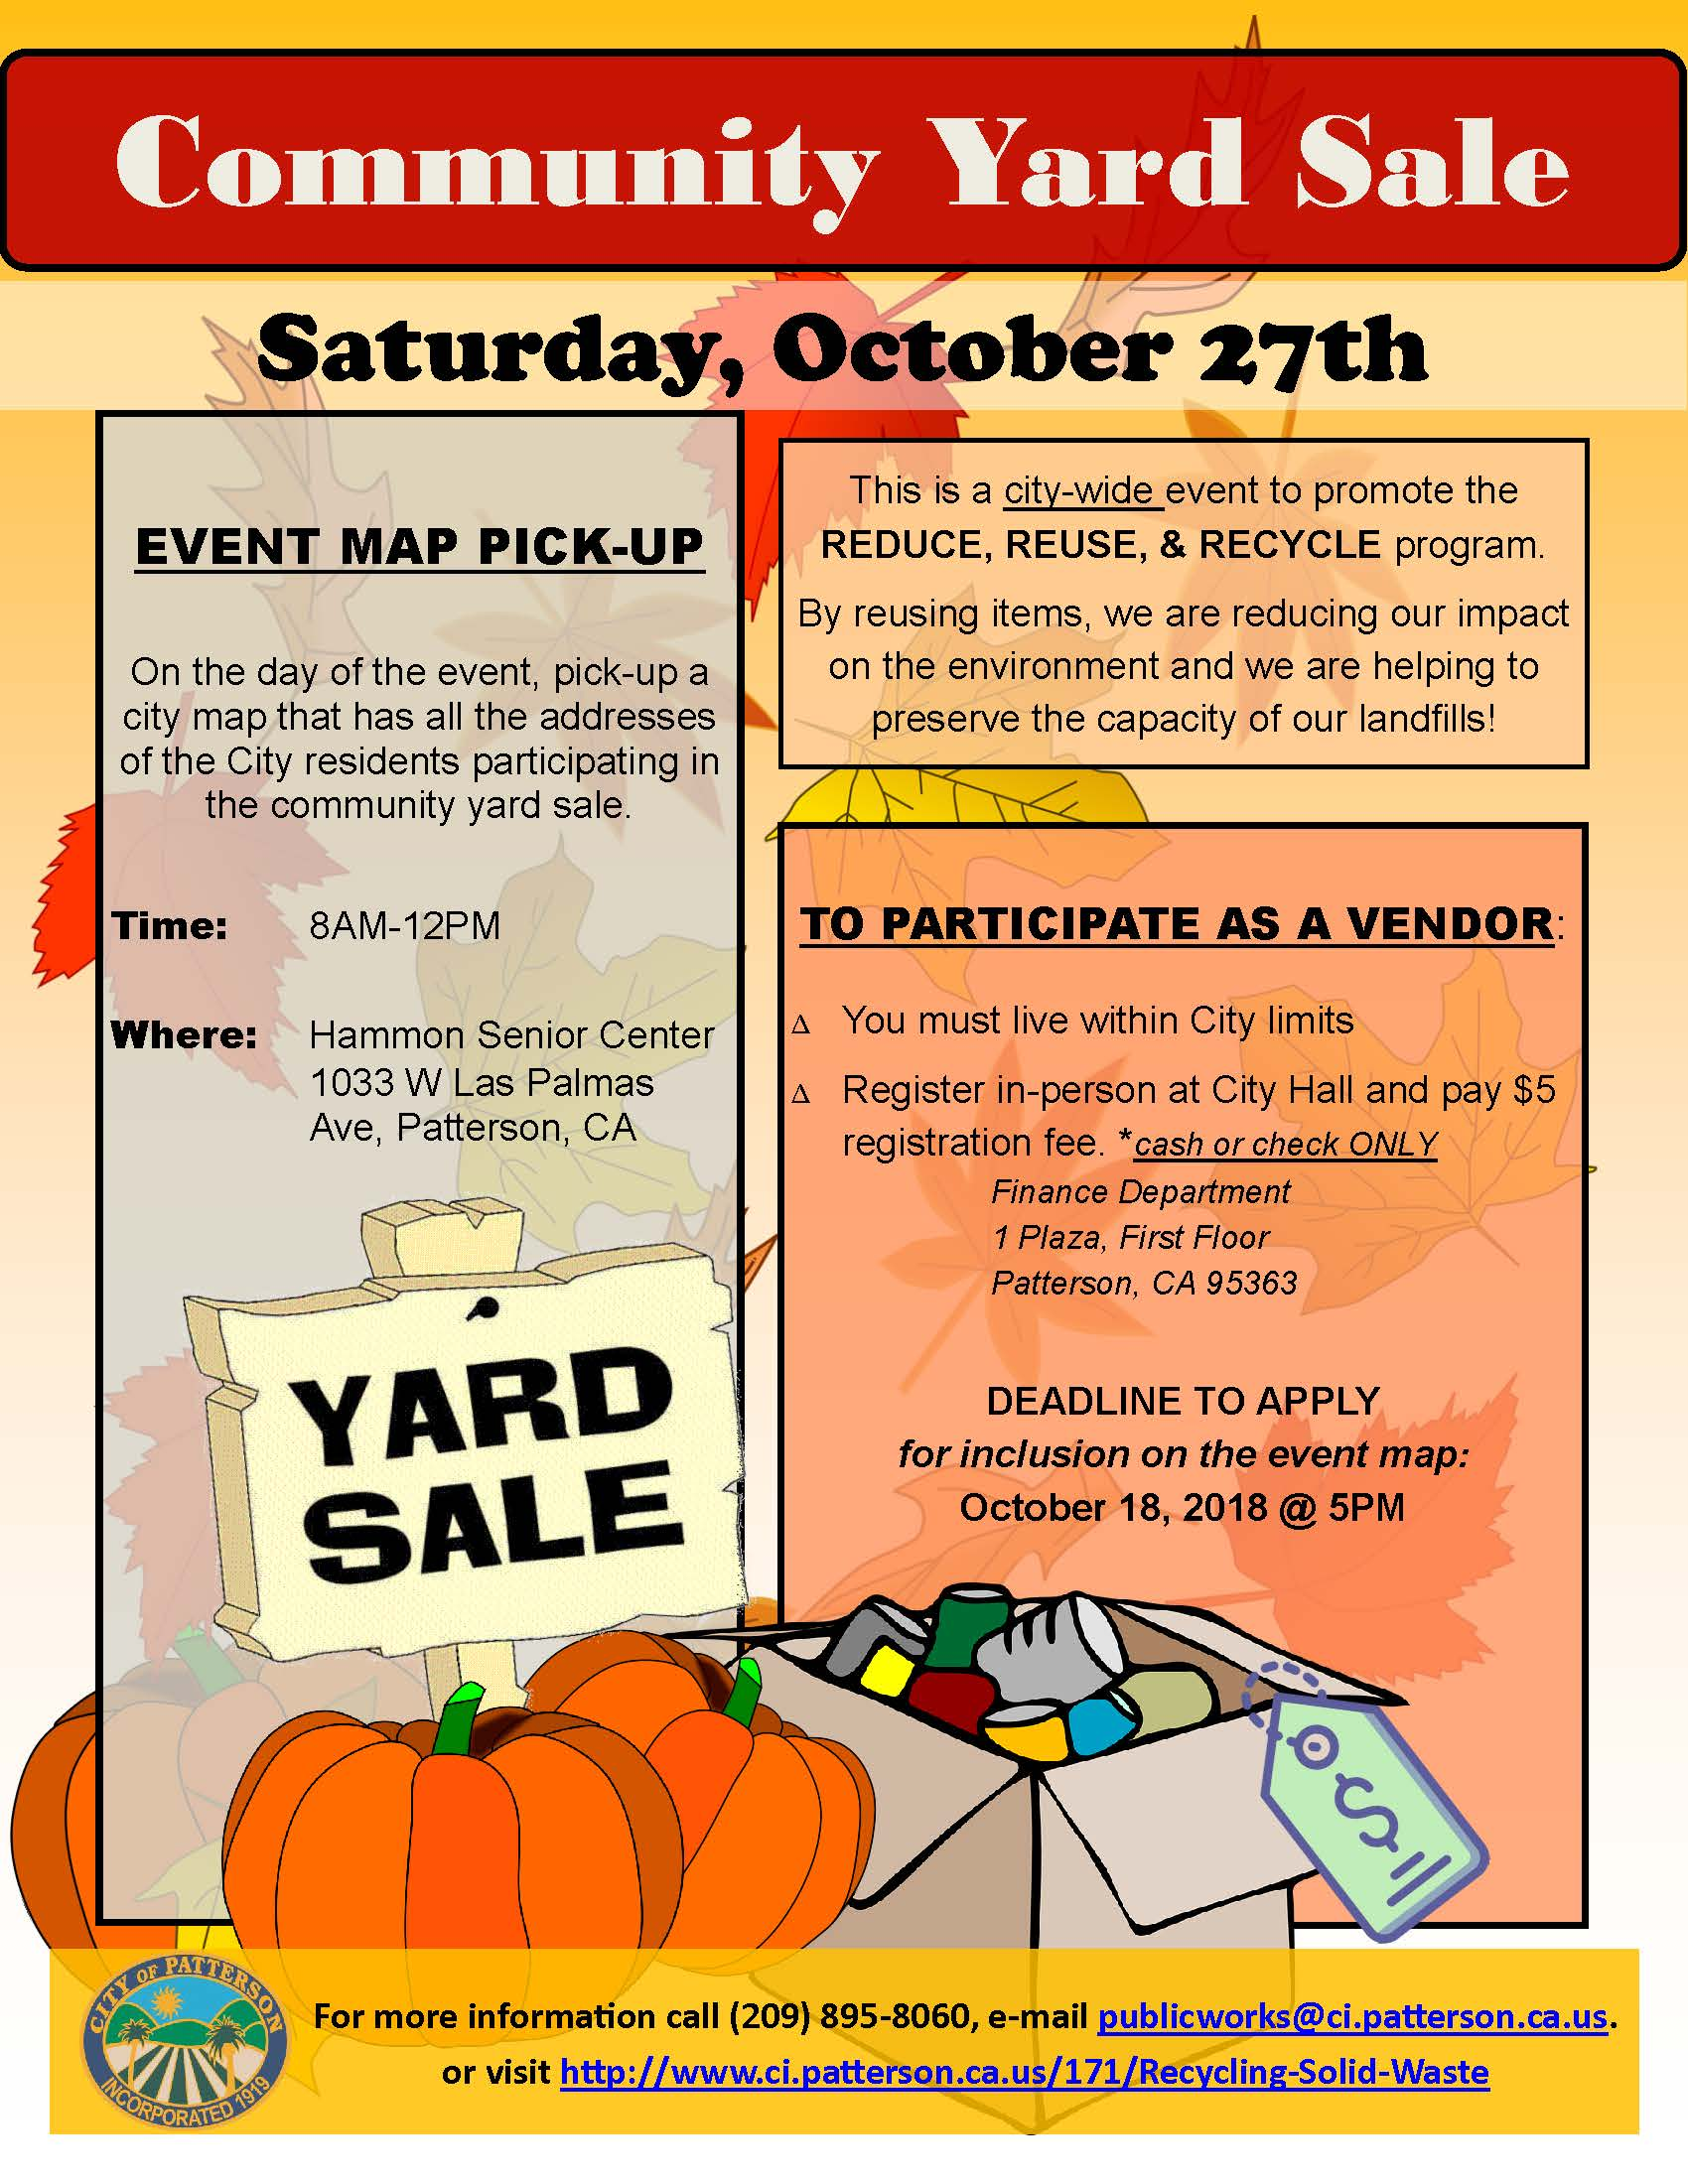 YardSale Flyer_Spanish